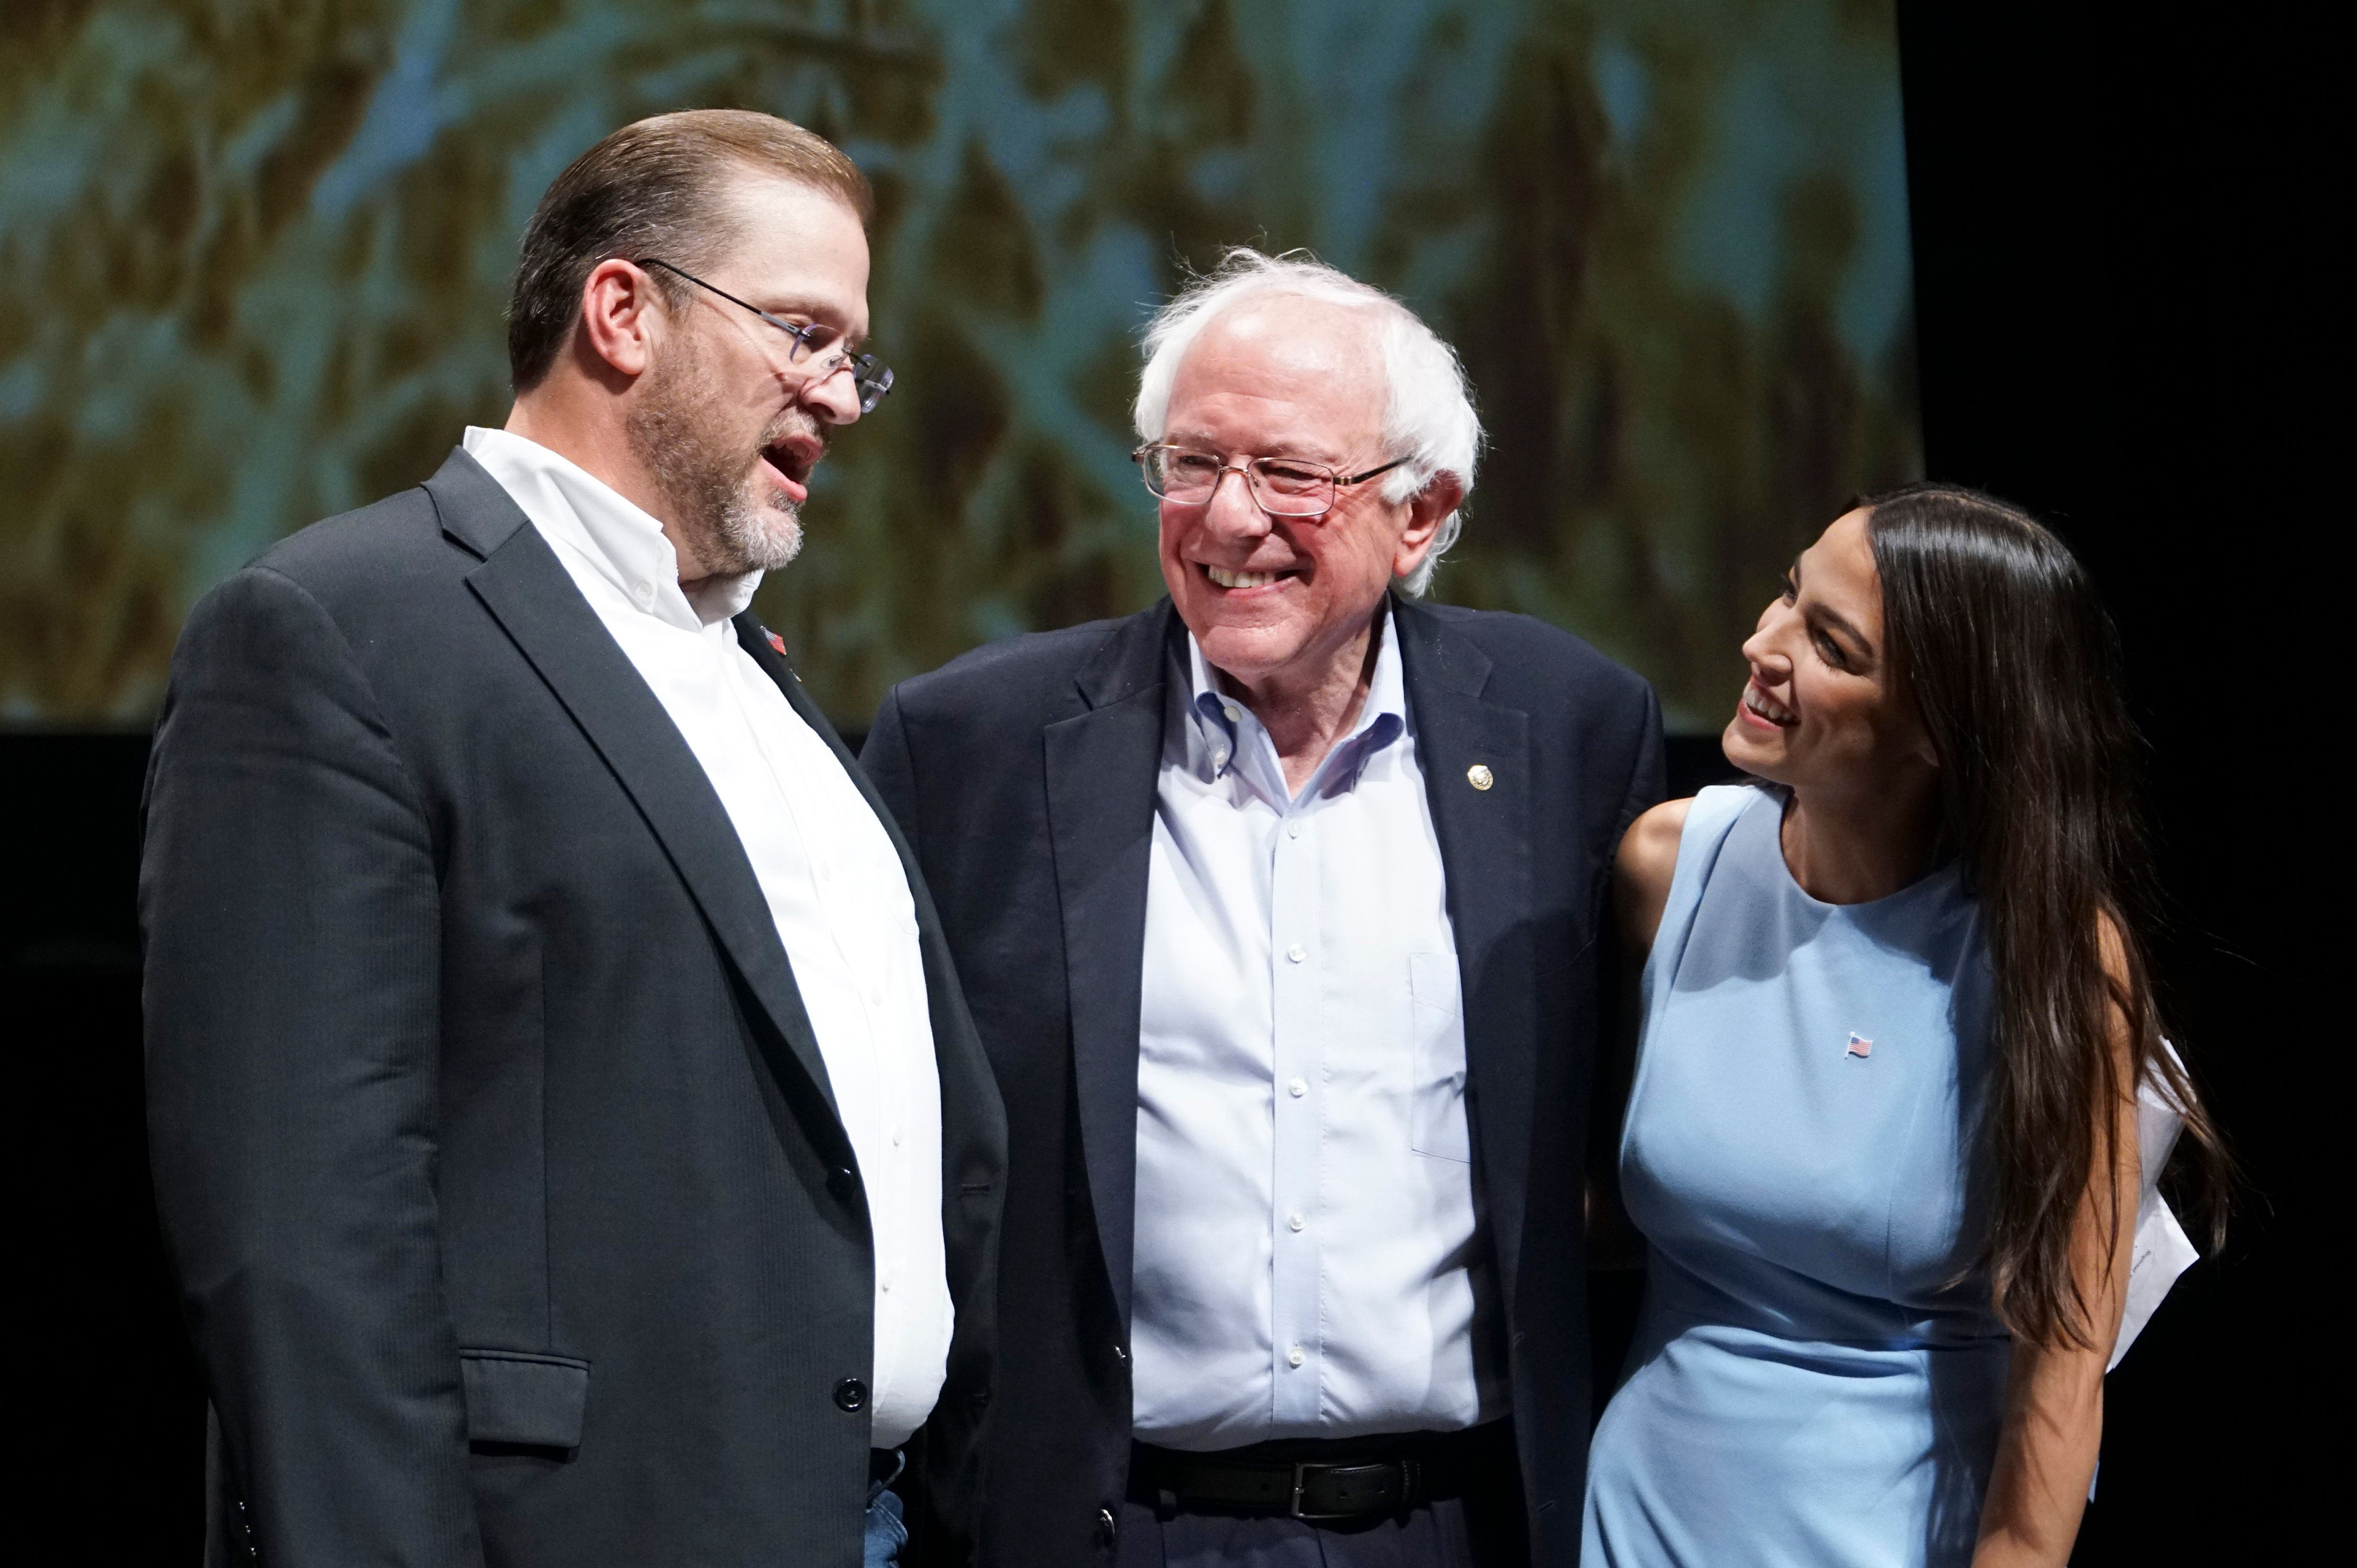 Kansas congressional candidate James Thompson left US Sen Bernie Sanders I-Vt and Alexandria Ocasio-Cortez a Democratic congressional candidate from New York stand together on stage after a rally Friday July 20 2018 in Wichita Kan Jaime Green/The Wichita Eagle via AP